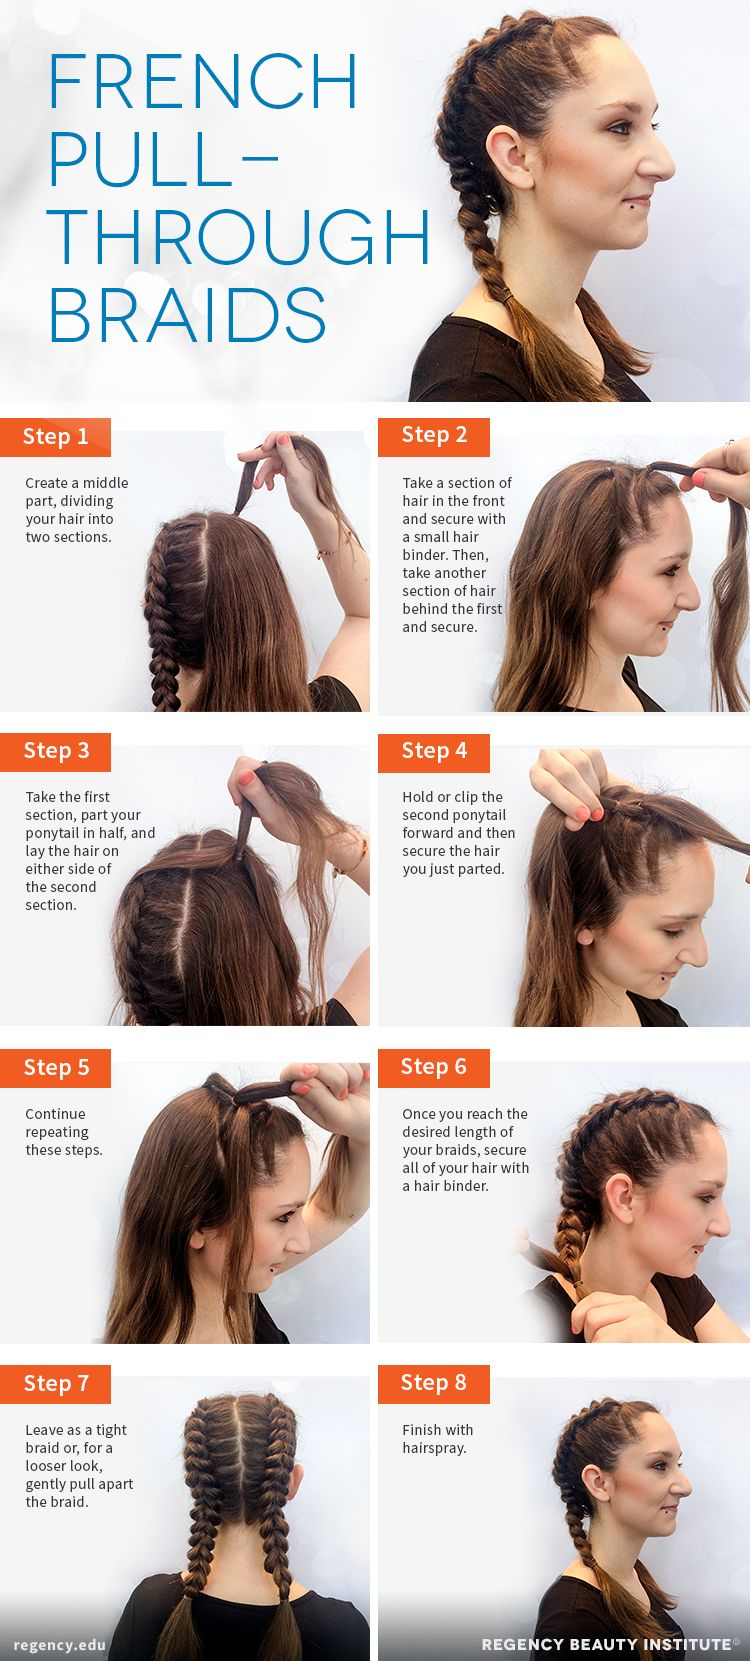 How To Create French Pull Through Braids Regency Beauty Institute Boxer Braids Hairstyles Hair Styles Long Hair Styles